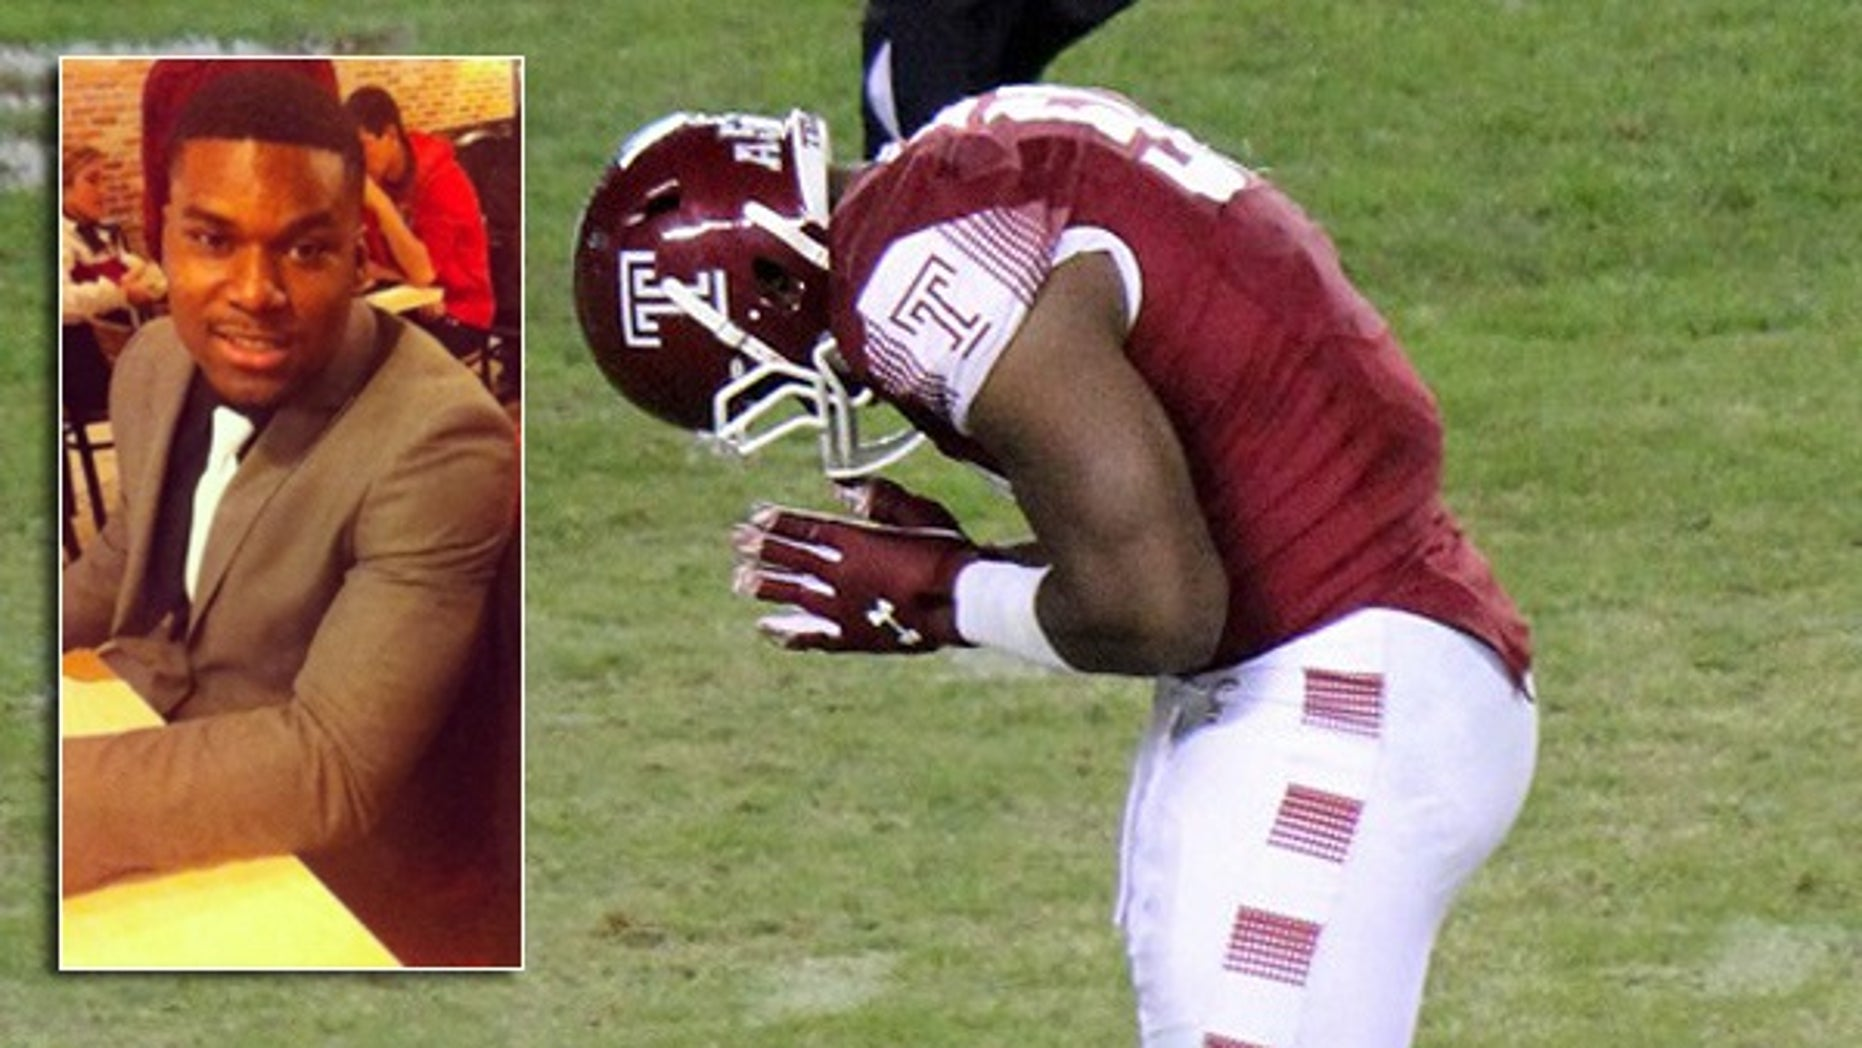 Praise Martin-Oguike, a Nigerian-born son of a New Jersey minister, was kicked off the Temple Owls football team and out of school for nearly two years after a woman accused him of assaulting her in a dorm room.